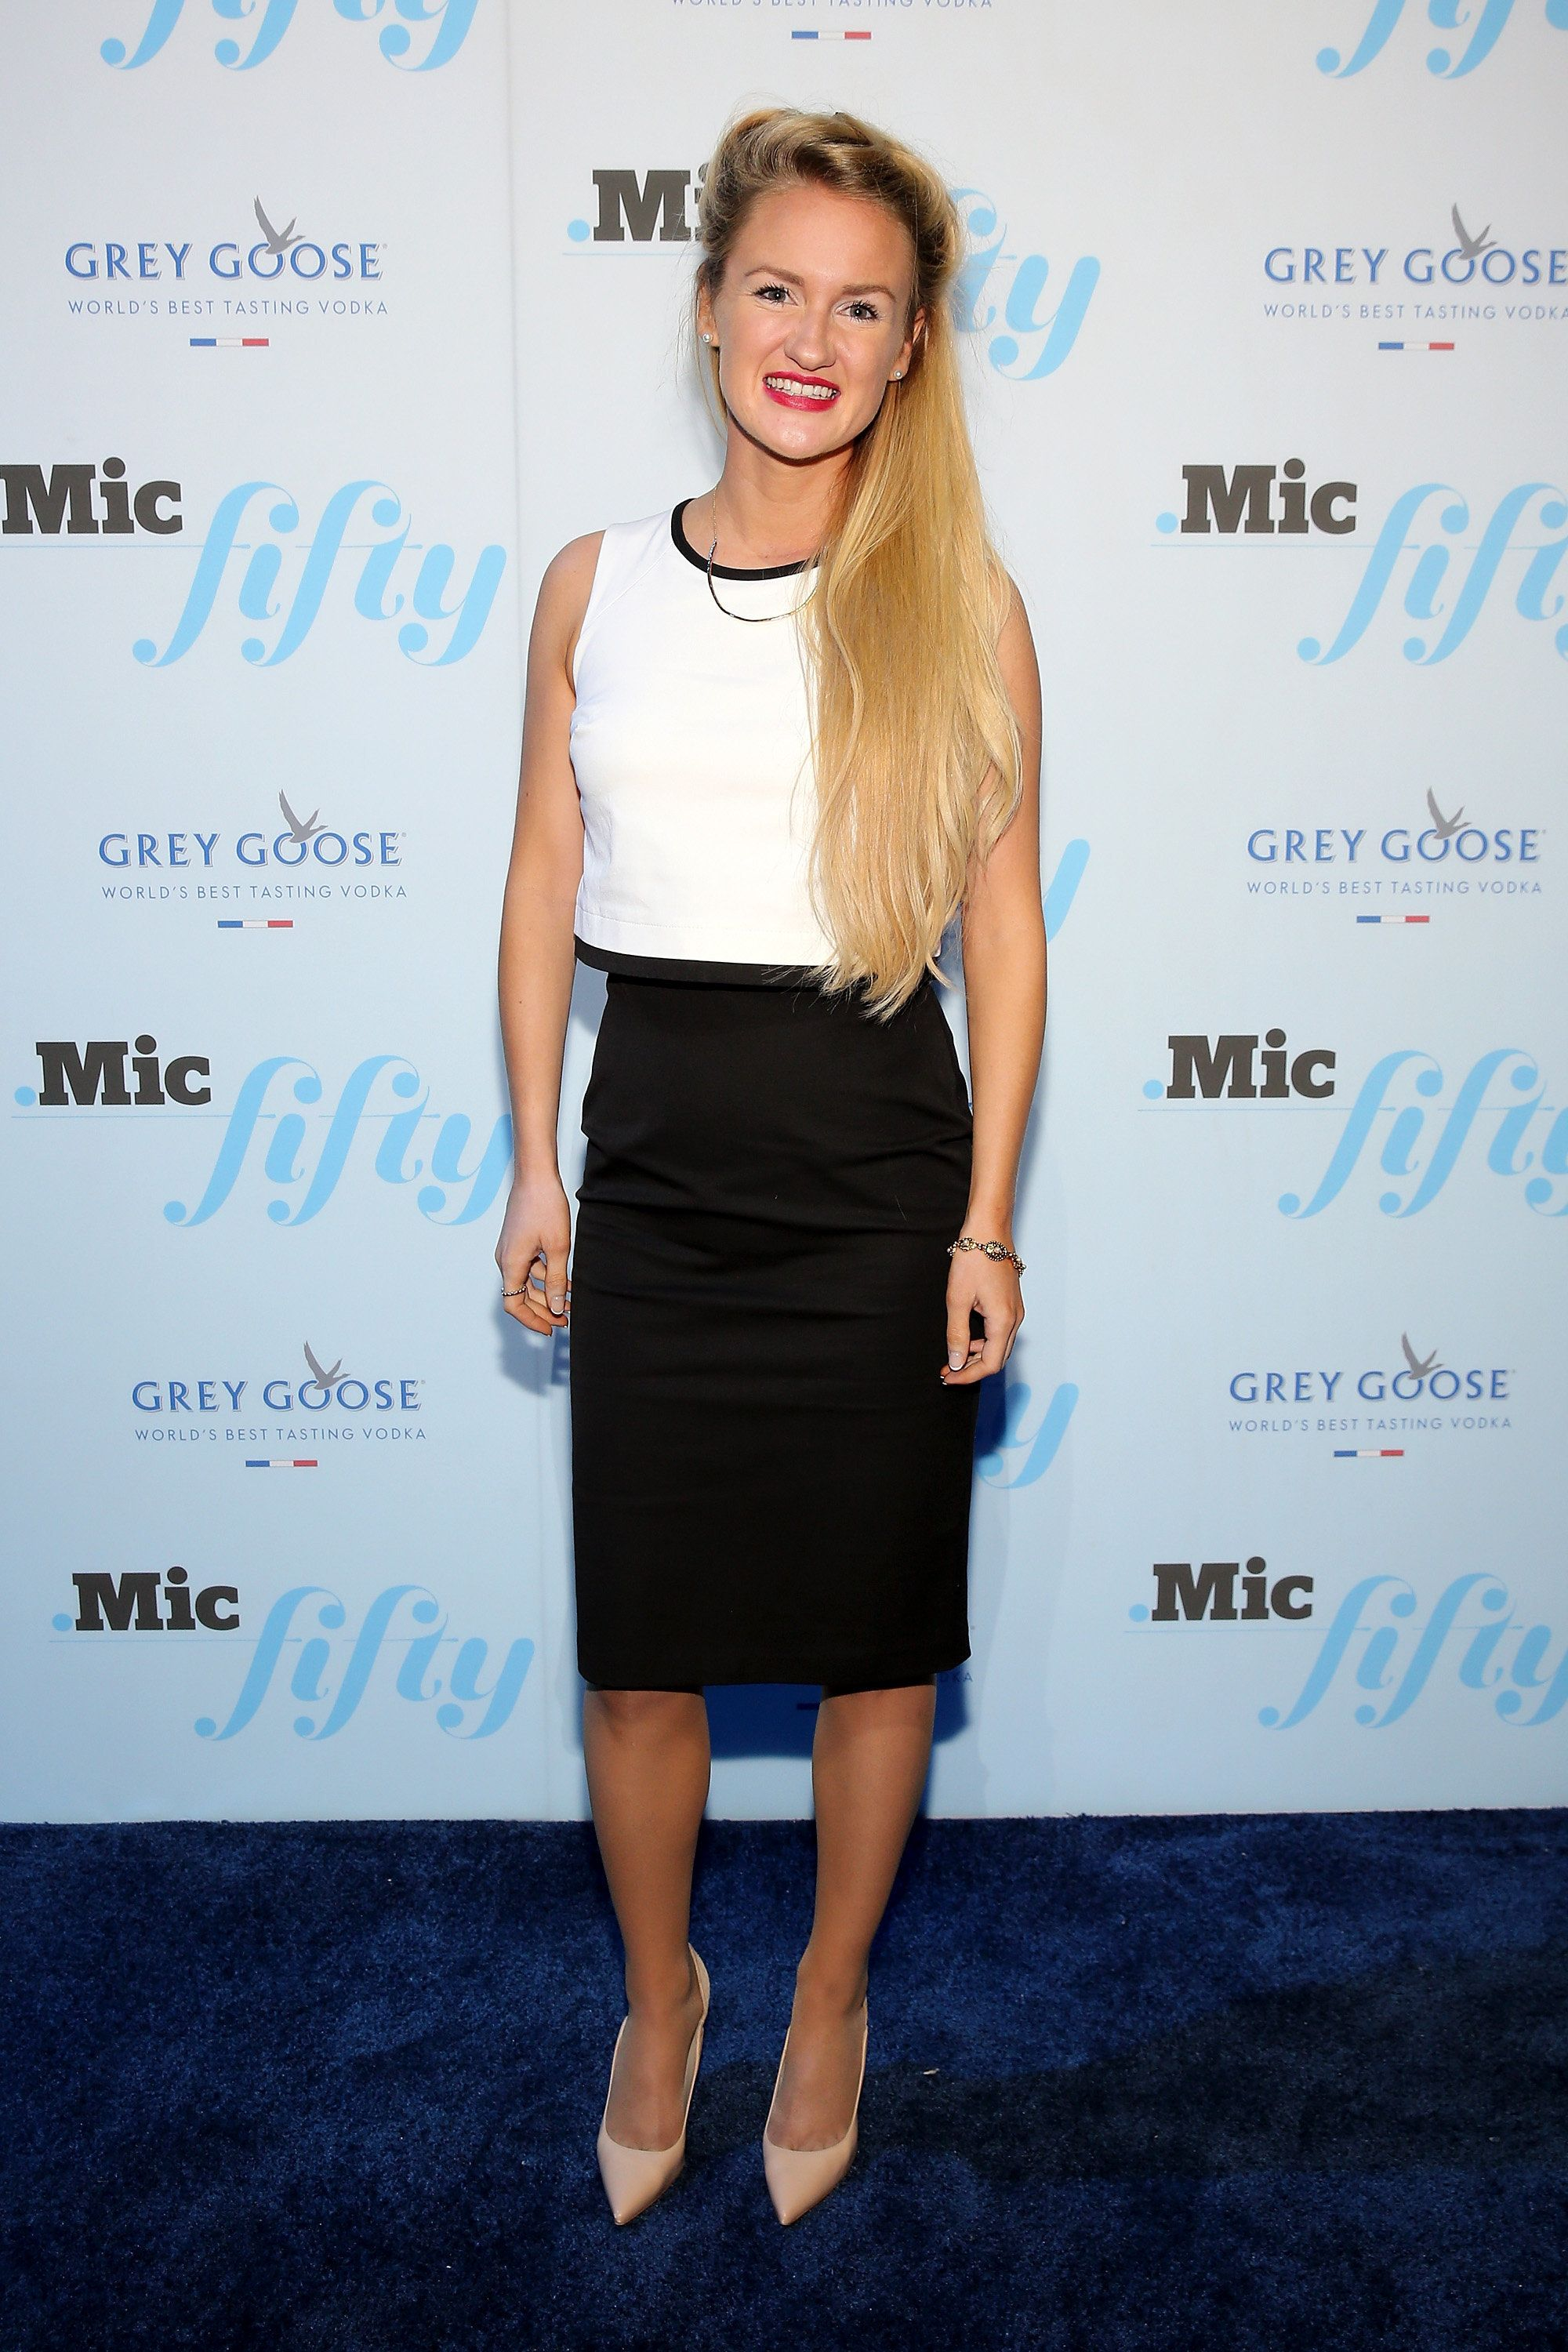 NEW YORK, NY - JUNE 18: Anna Therese Day attends GREY GOOSE Vodka Hosts The Inaugural Mic50 Awards at Marquee on June 18, 2015 in New York City.  (Photo by Neilson Barnard/Getty Images for Grey Goose)